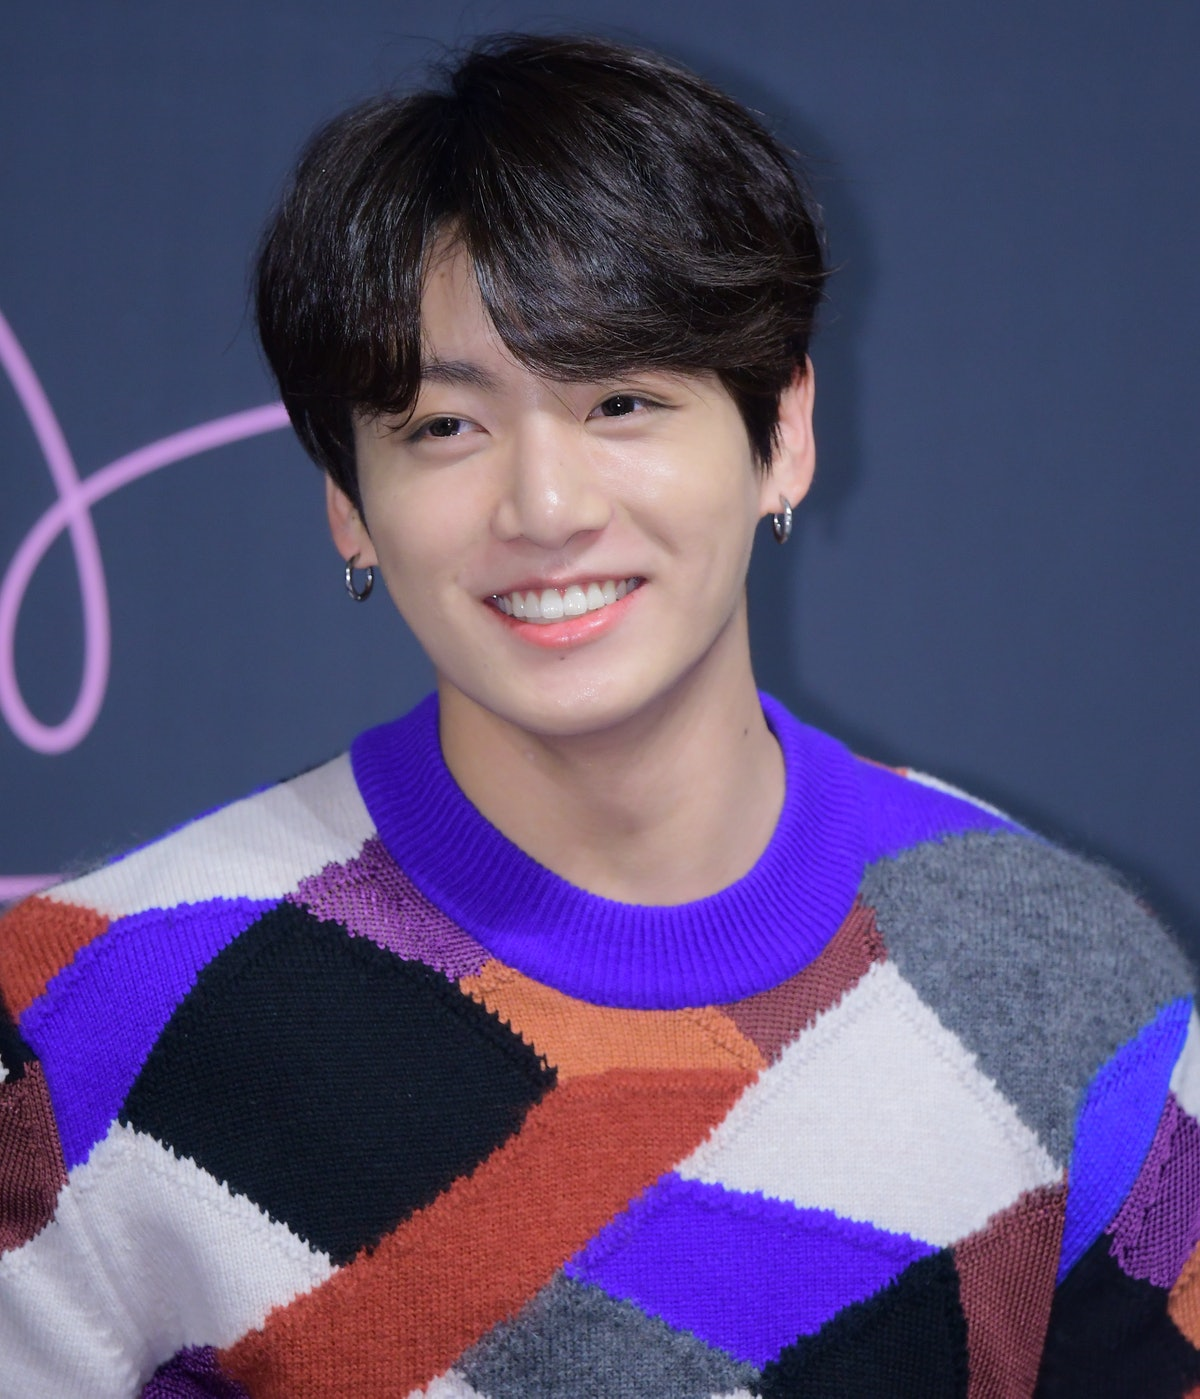 SEOUL, SOUTH KOREA - MAY 24: Jungkook of BTS attends press conference for the BTS's Third Album 'LOV...